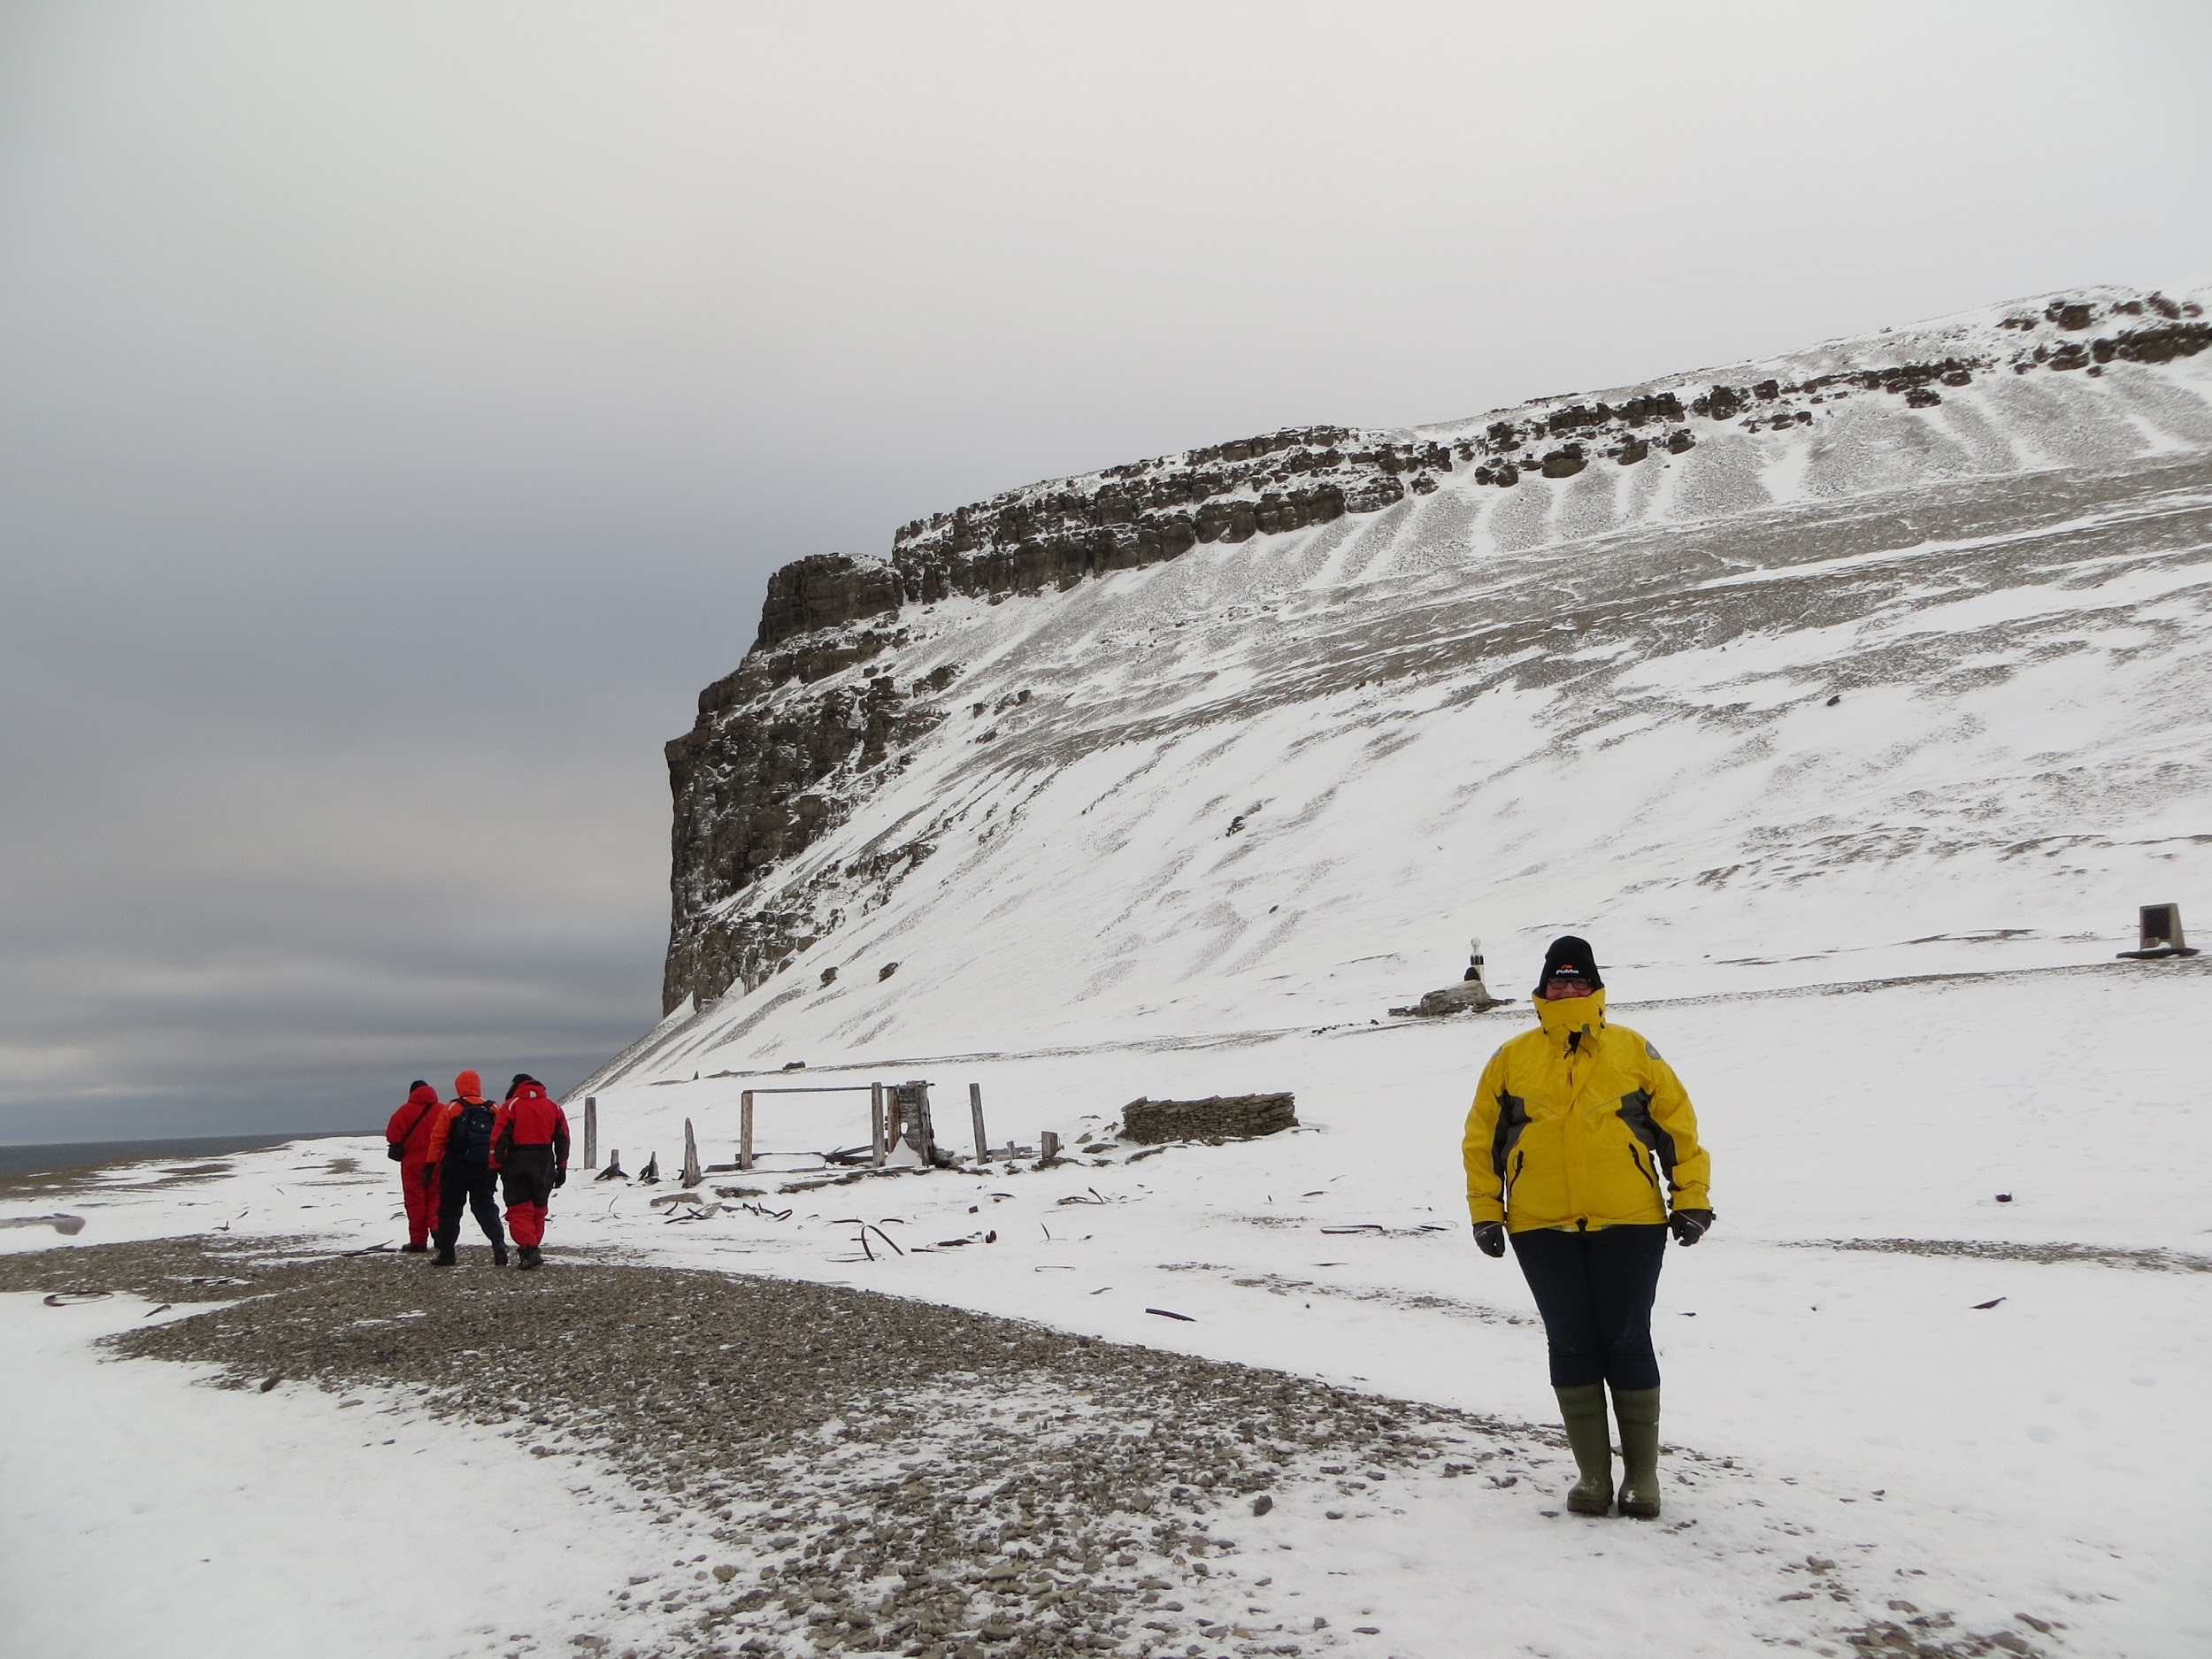 Karina at the remains of the failed Franklin Expedition on Beechey Island in the Arctic.